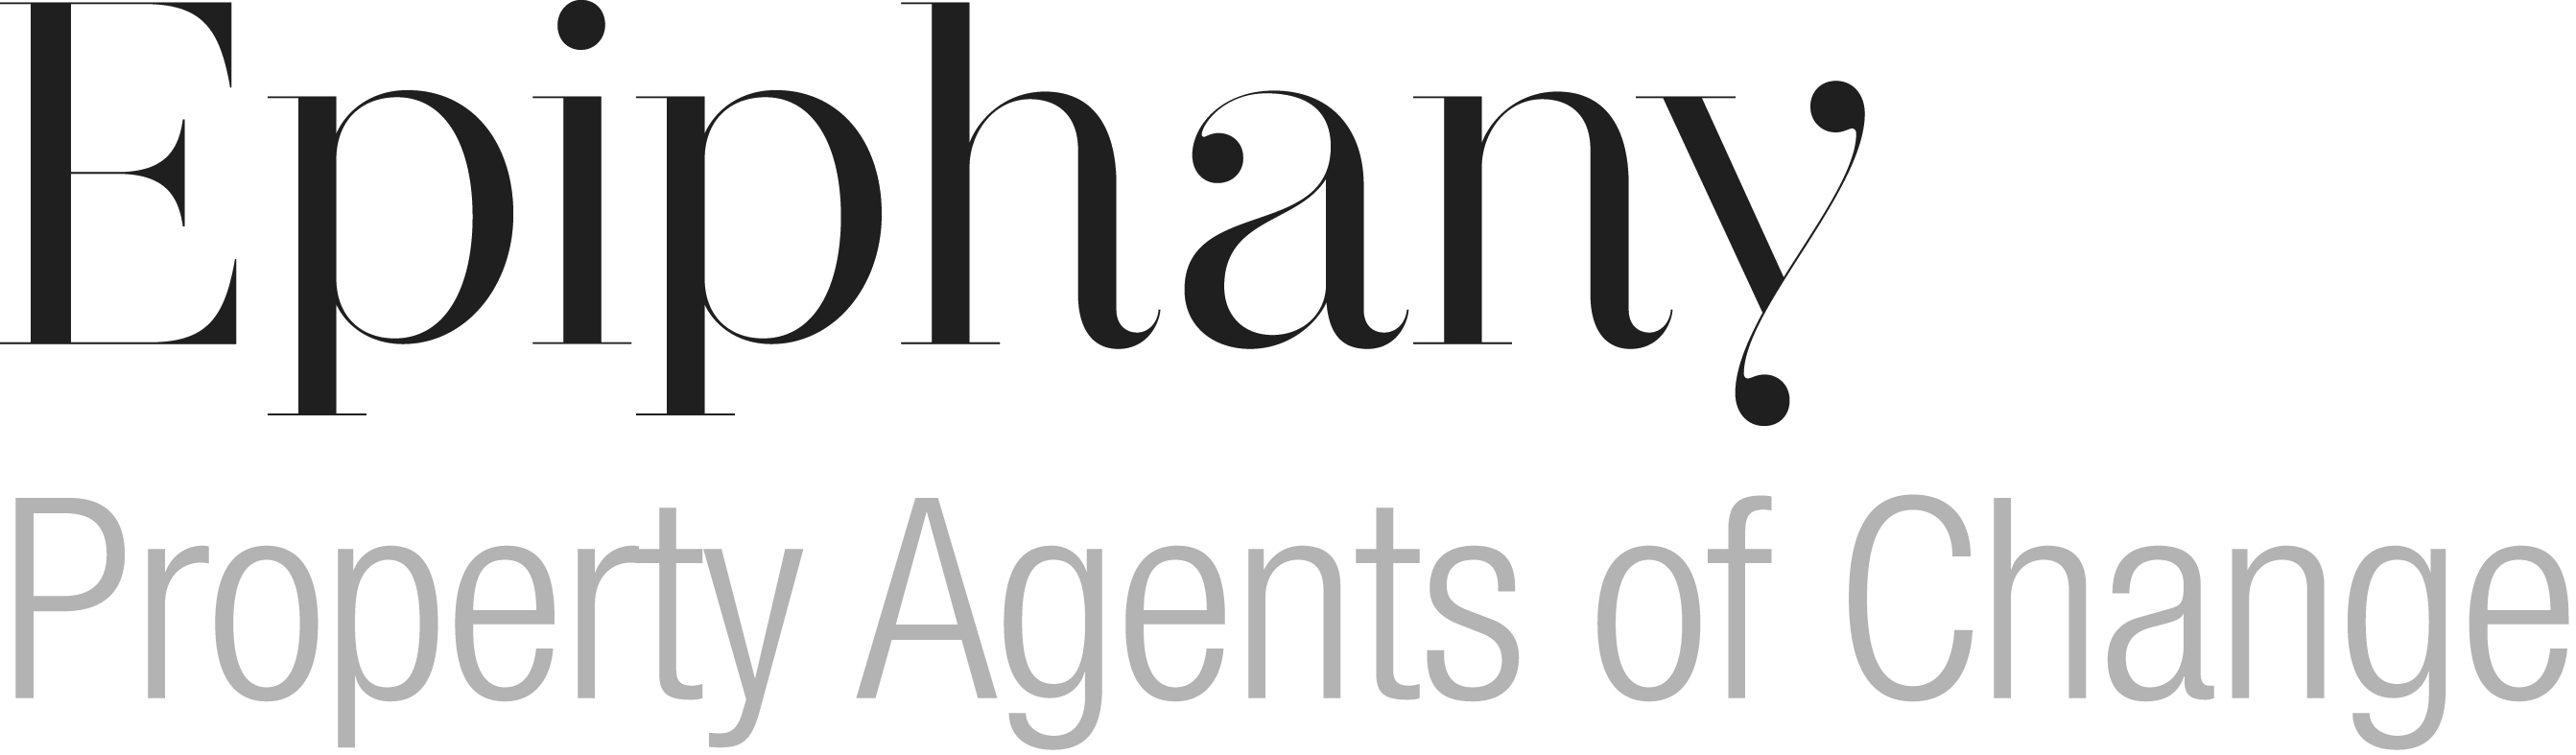 Epiphany Property Agents of Change